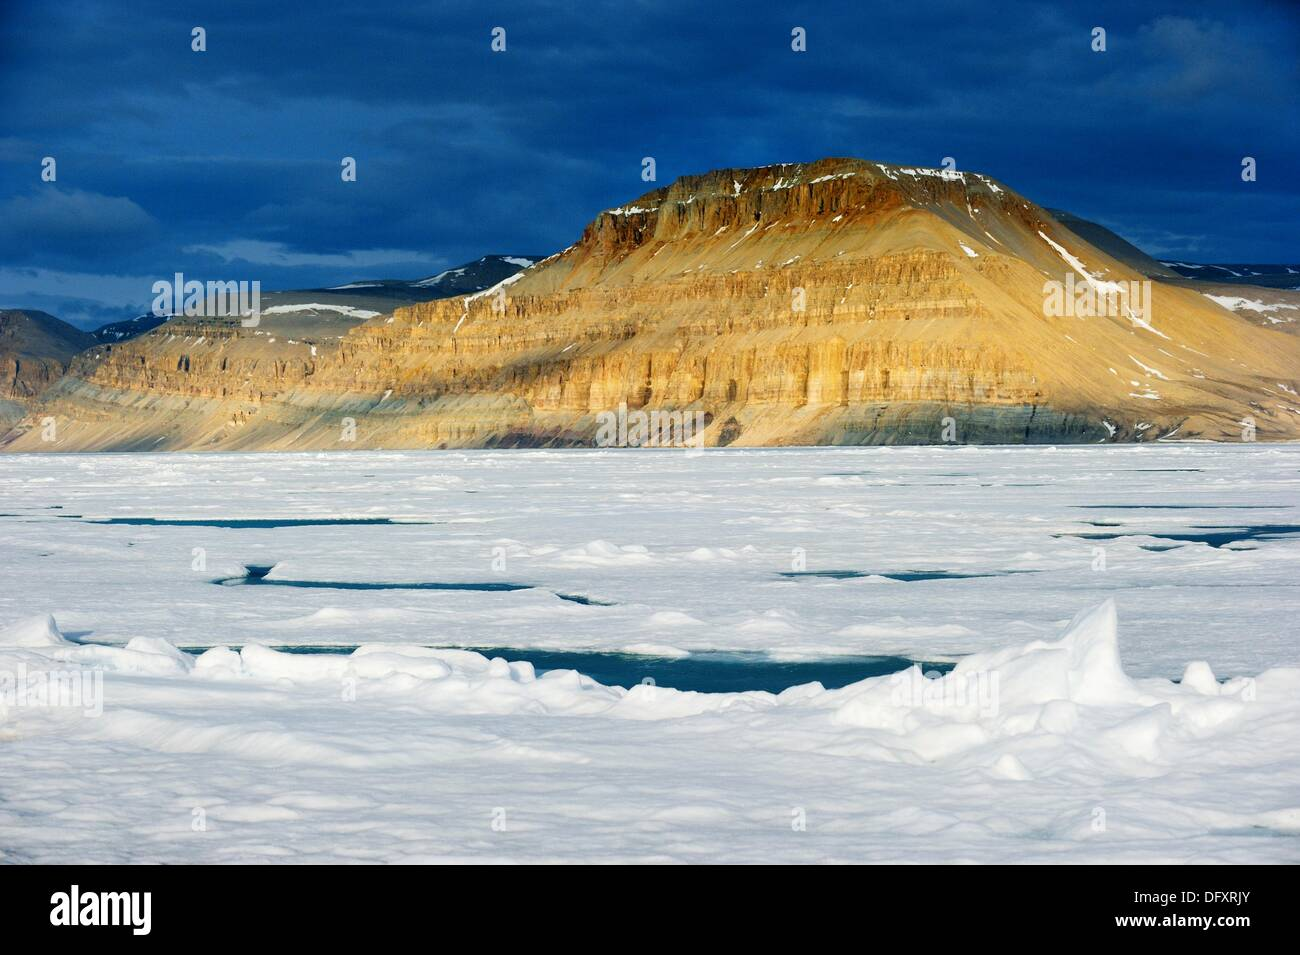 Midnight sun light over icepack and cliffs in spring, Arctic Bay, Baffin Island, Nunavut, Canada - Stock Image